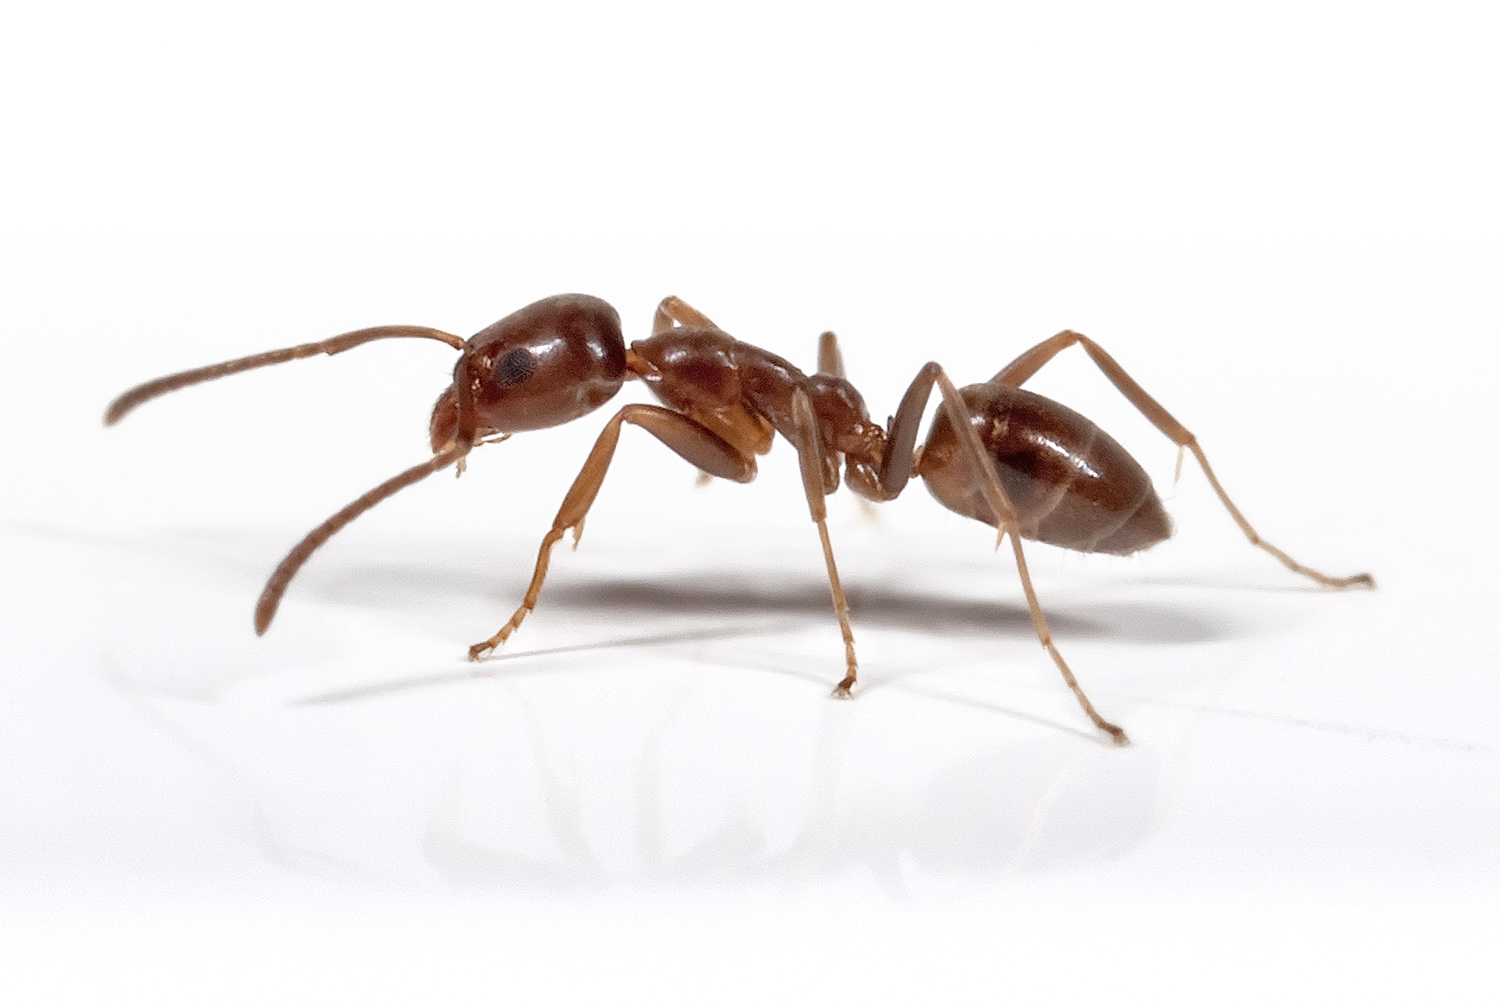 Image: Argentine ants harbour novel virus